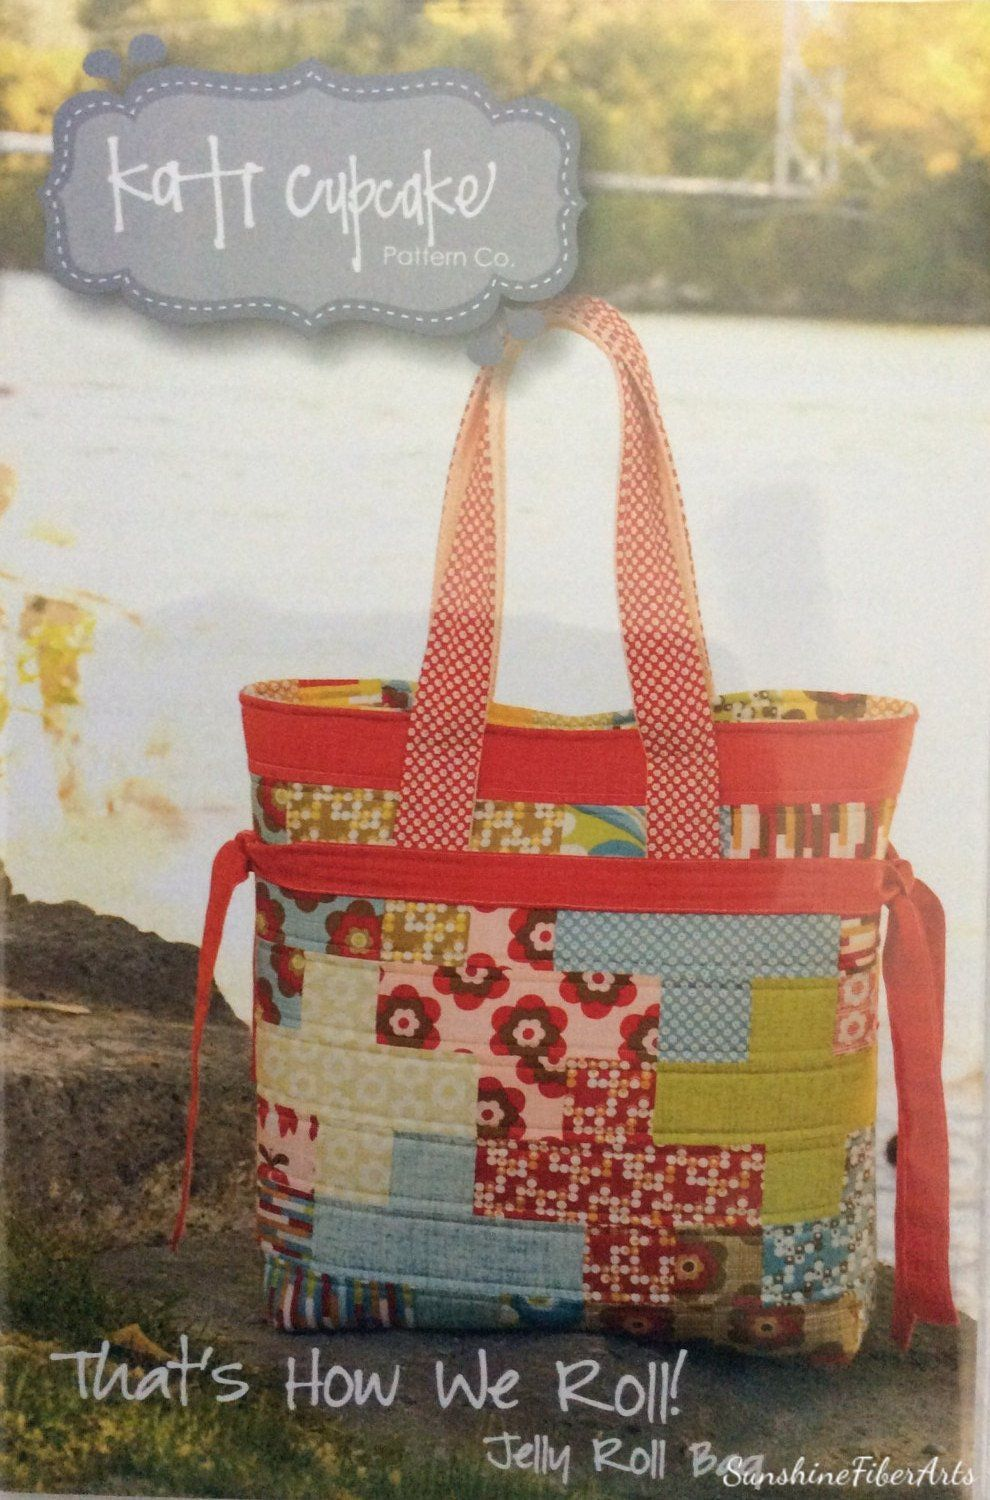 aa280f3c60f1 That s How We Roll Jelly Roll Bag Pattern